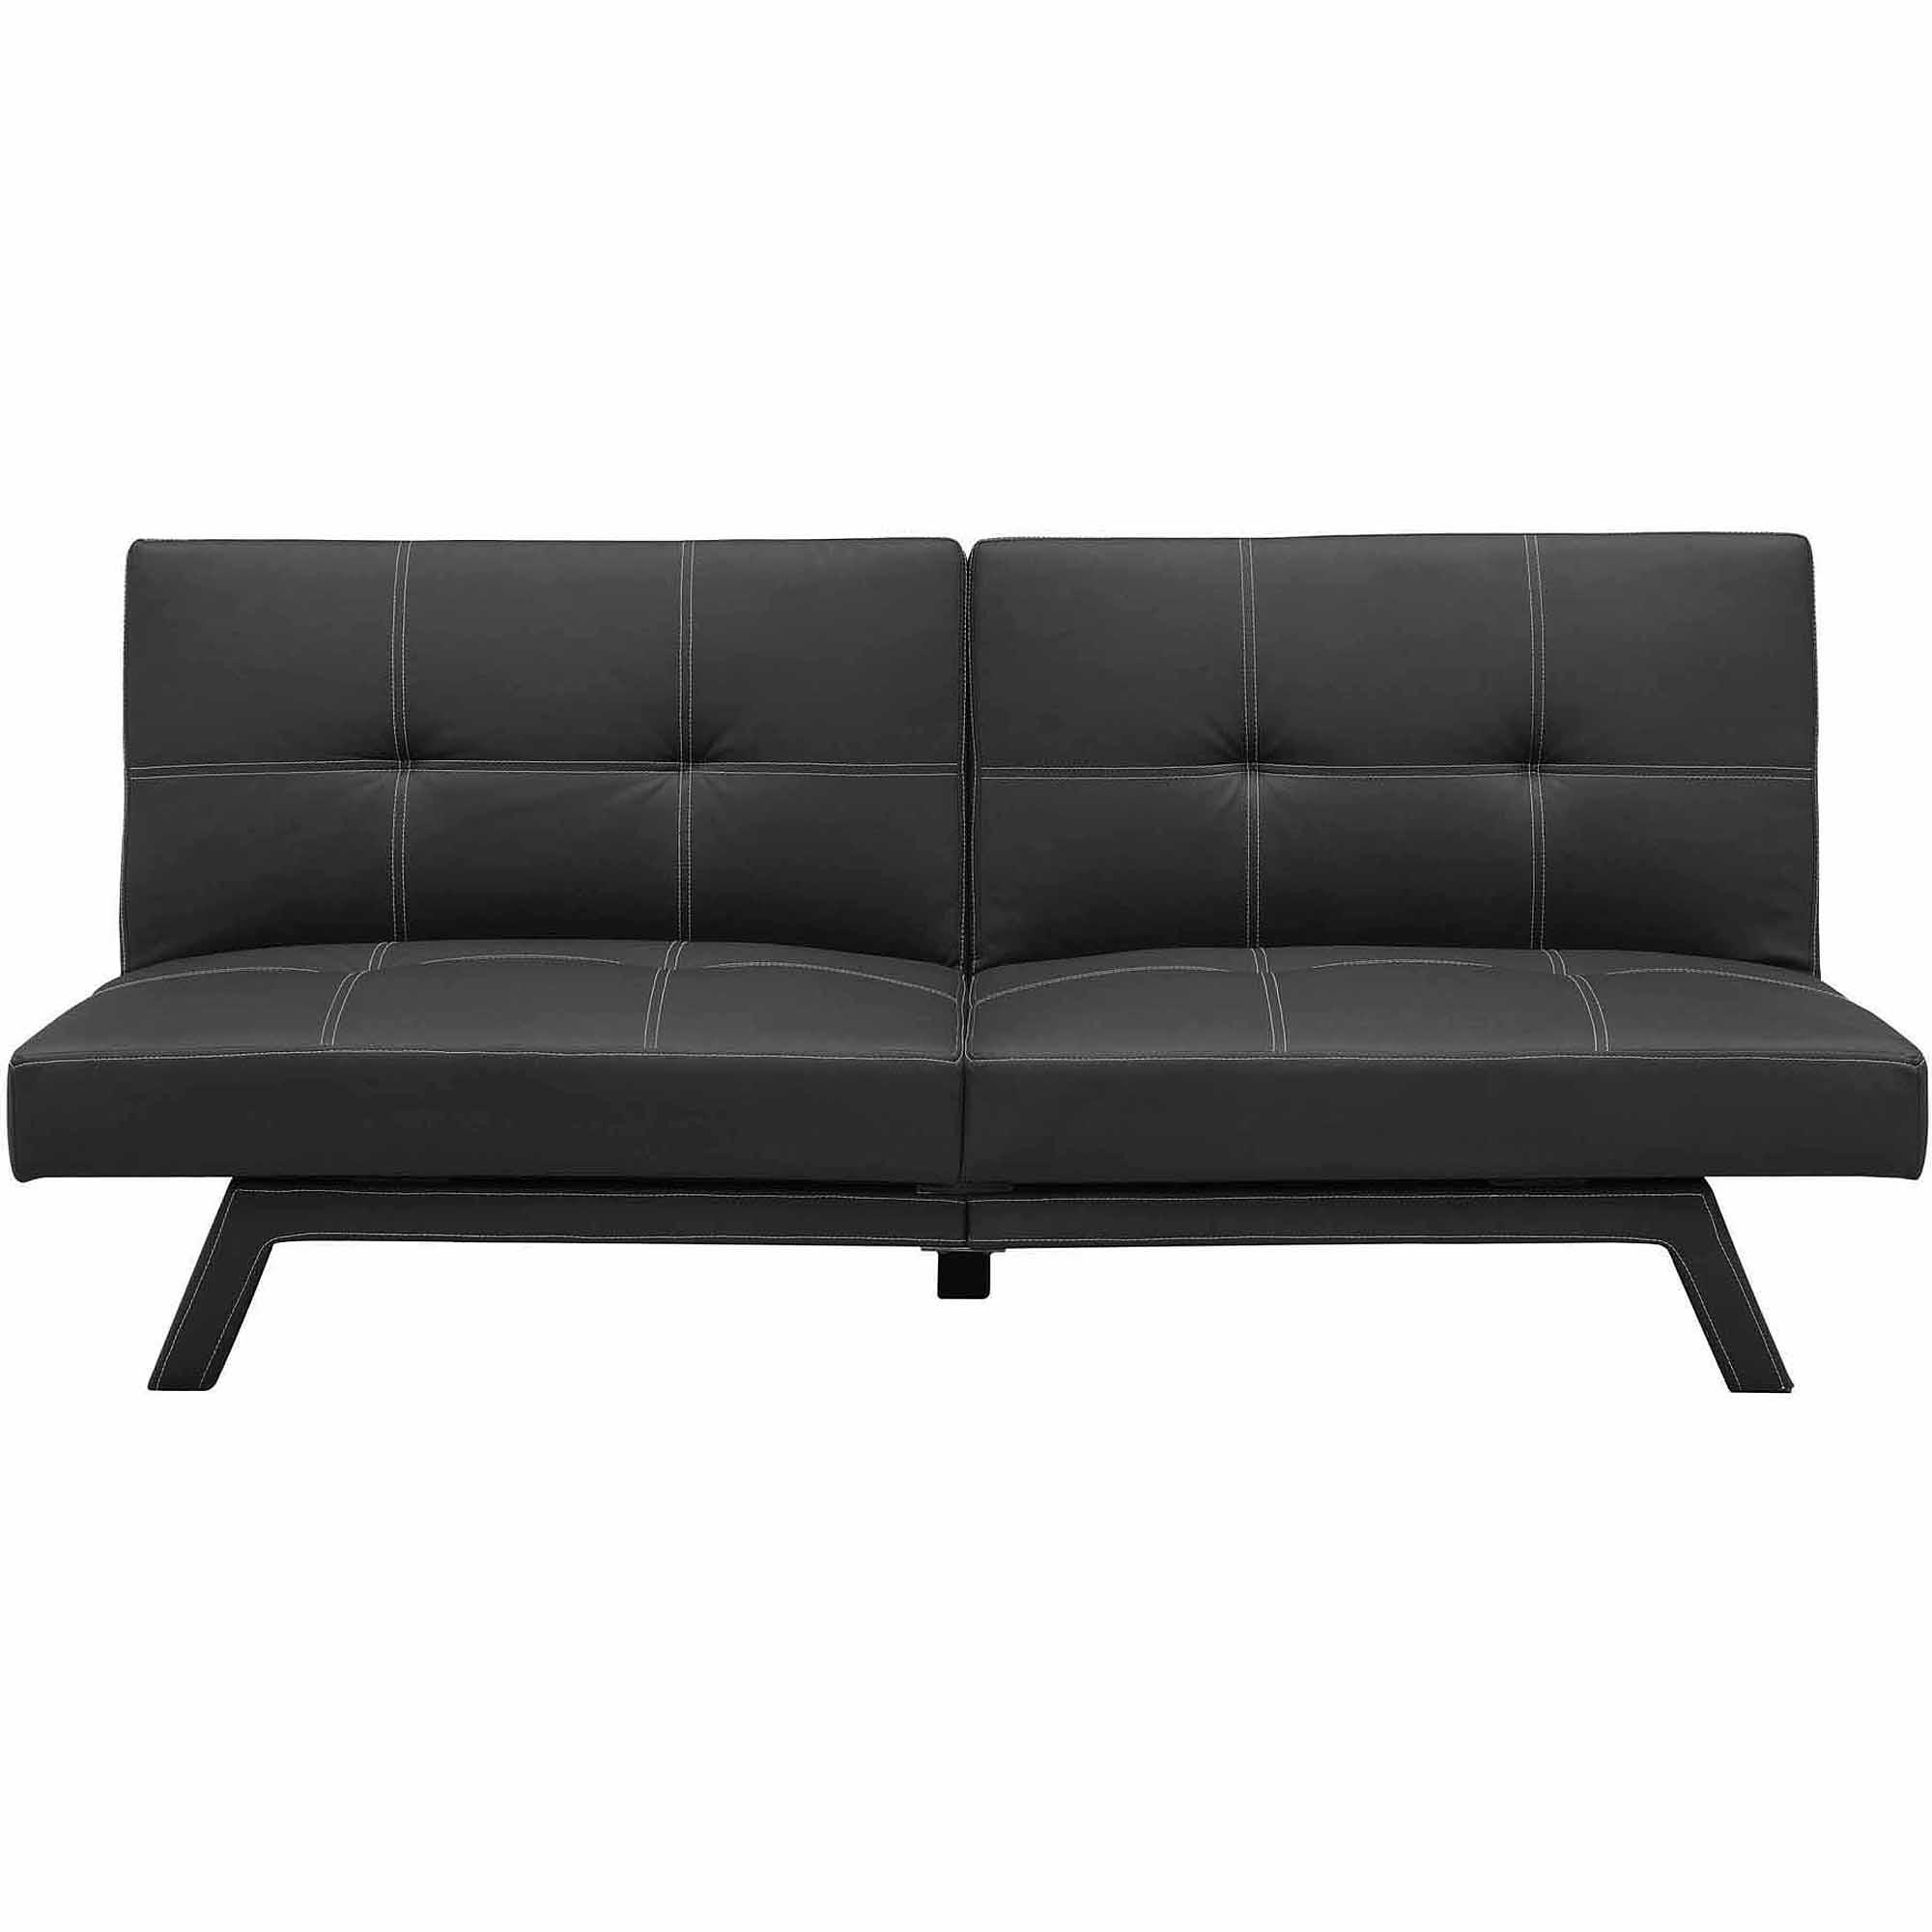 20 Top Faux Leather Futon Sofas Sofa Ideas